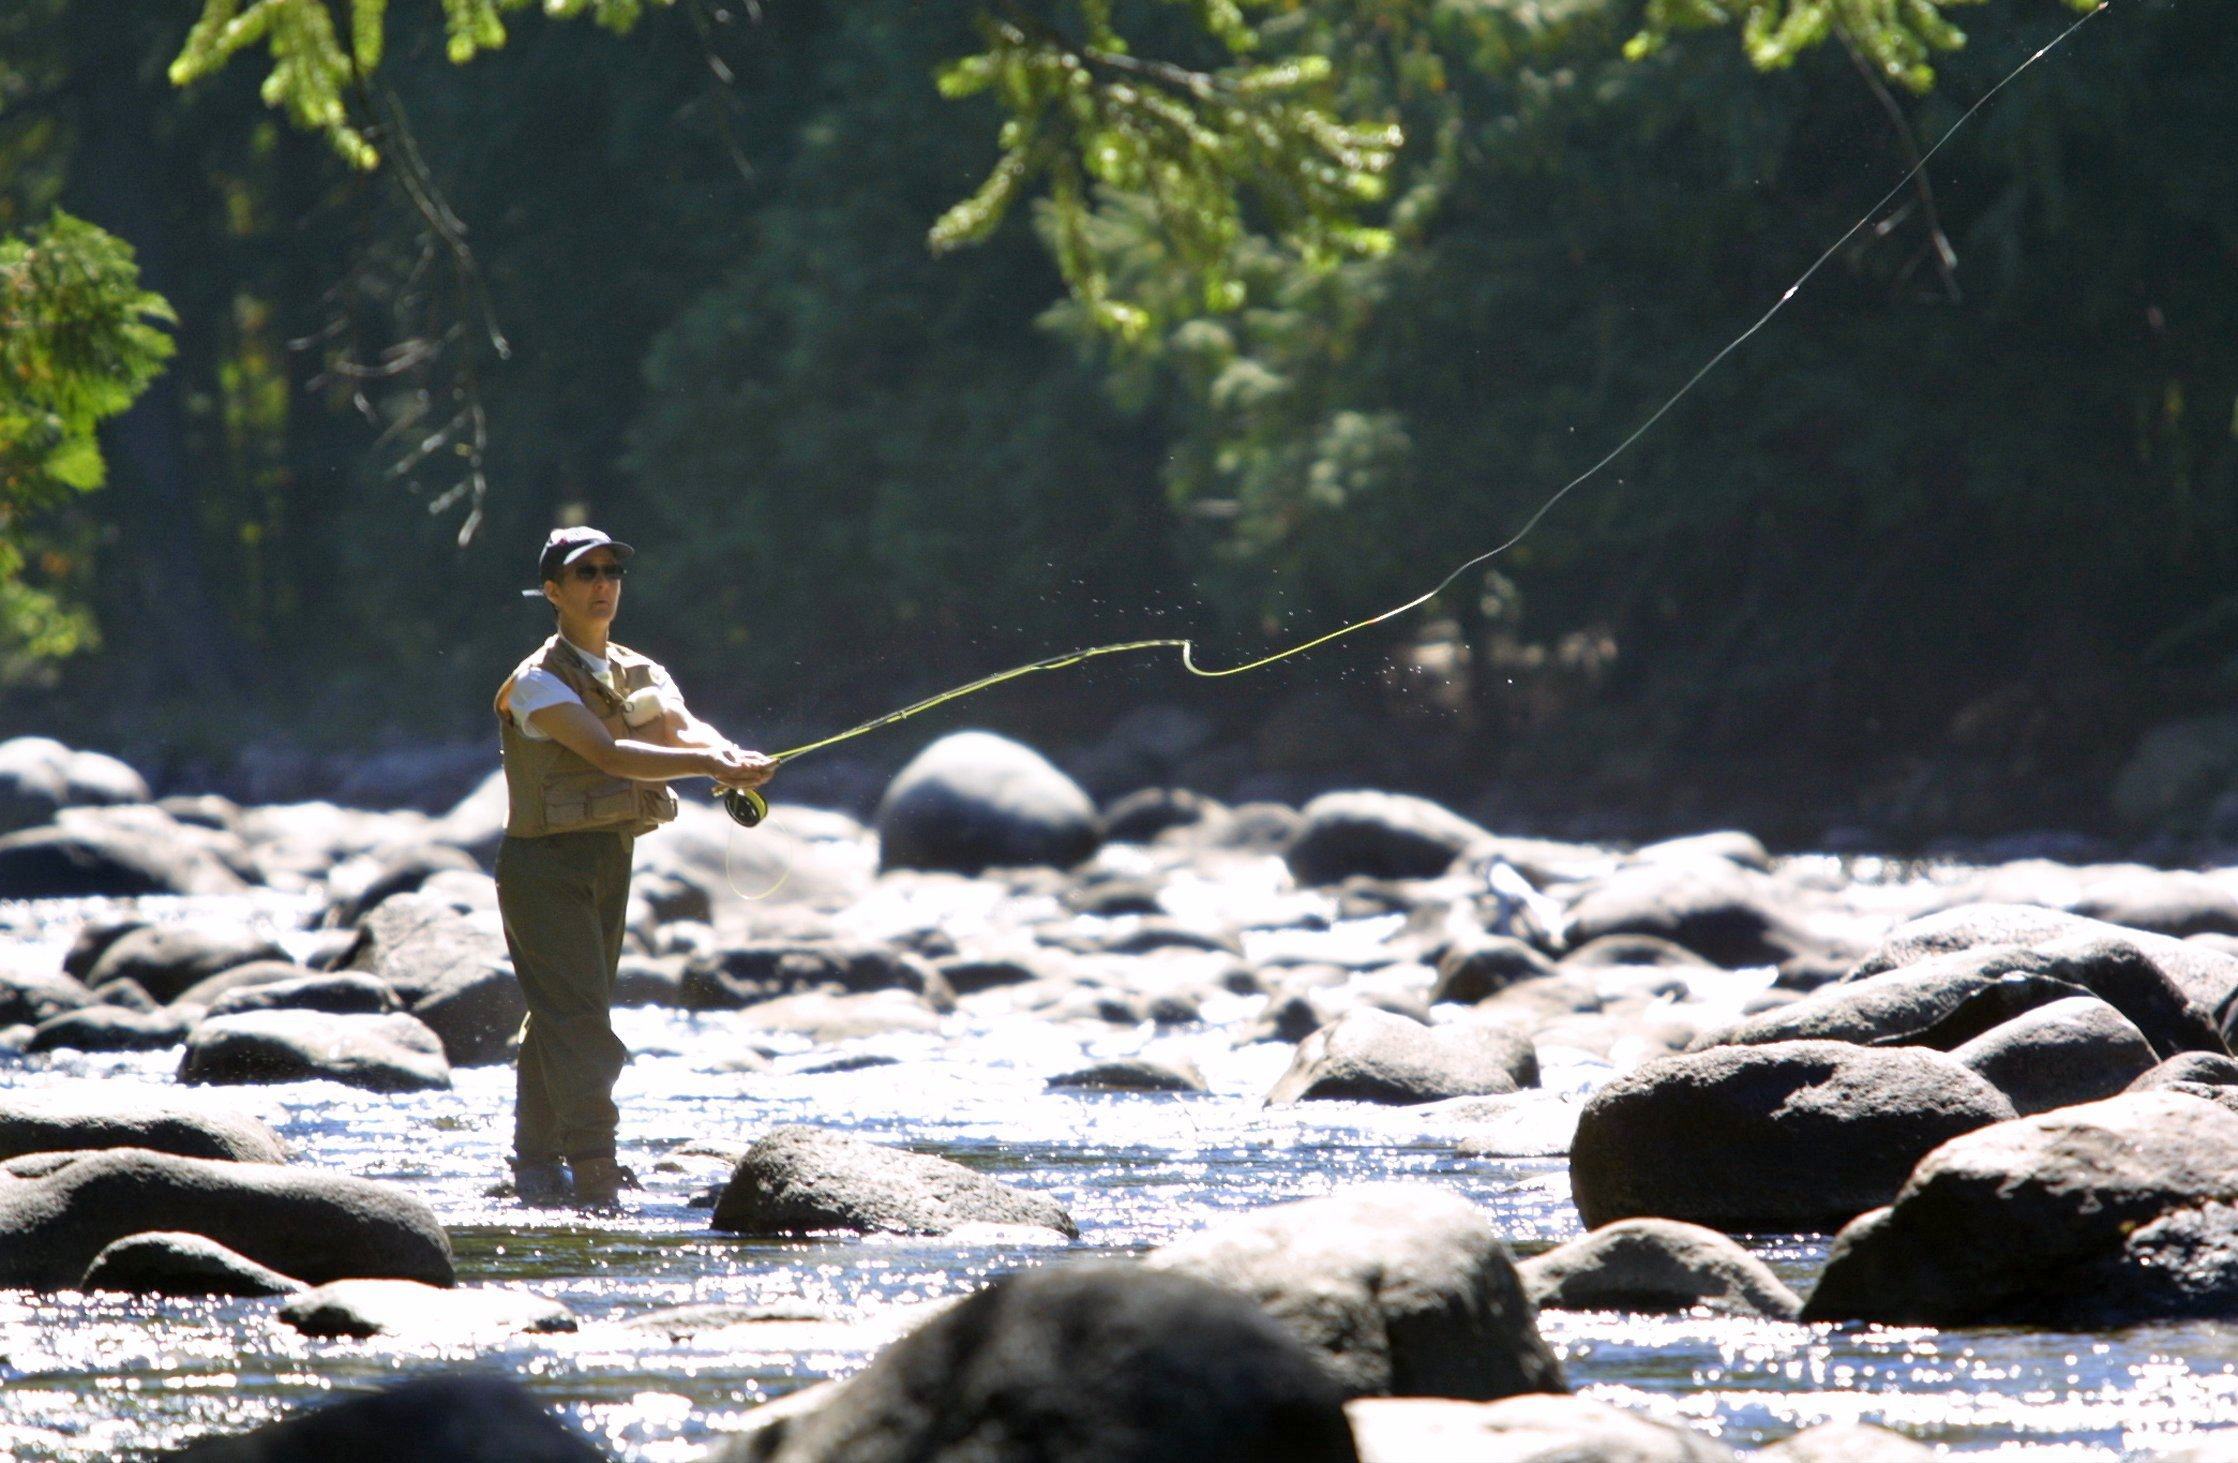 FISHING IS A ART FORM.